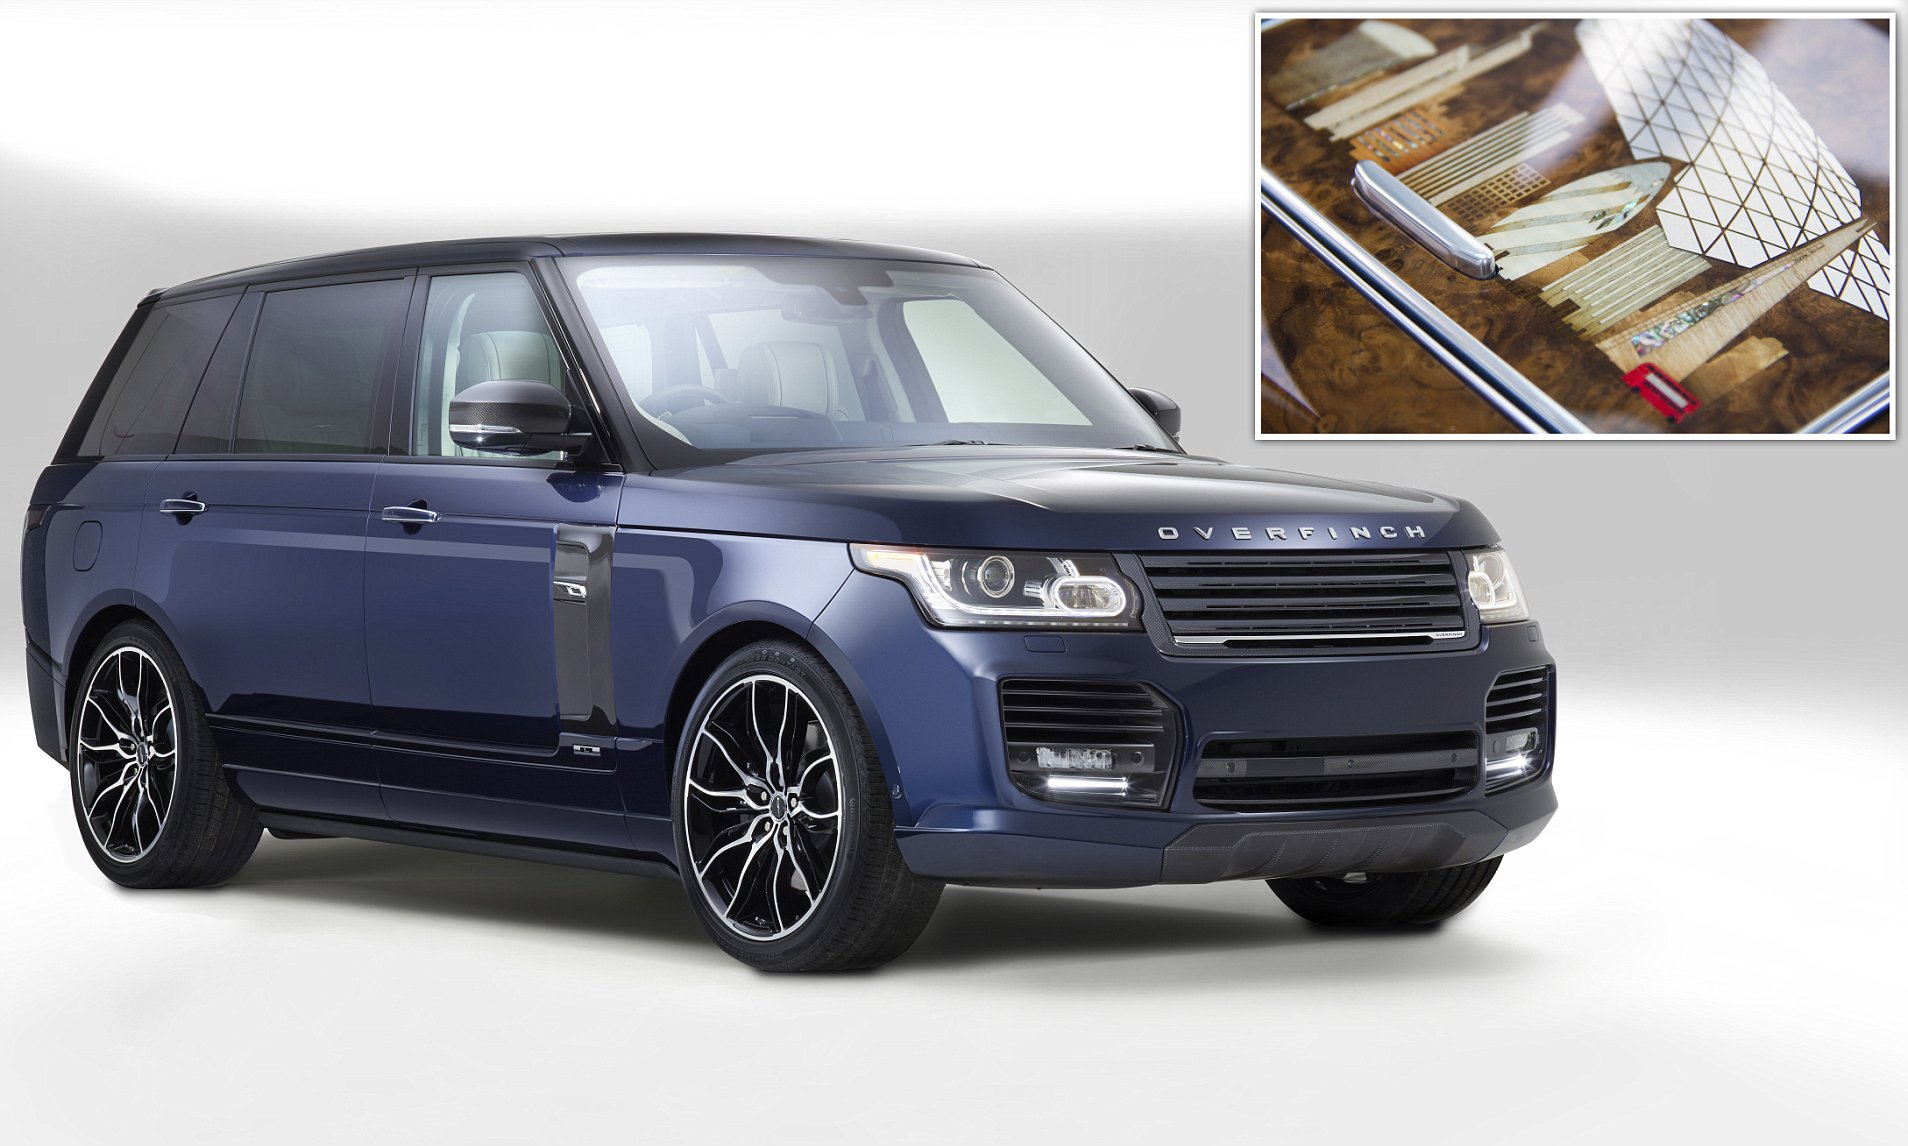 hight resolution of the london edition 250k overfinch range rover emblazoned with landmarks this is money